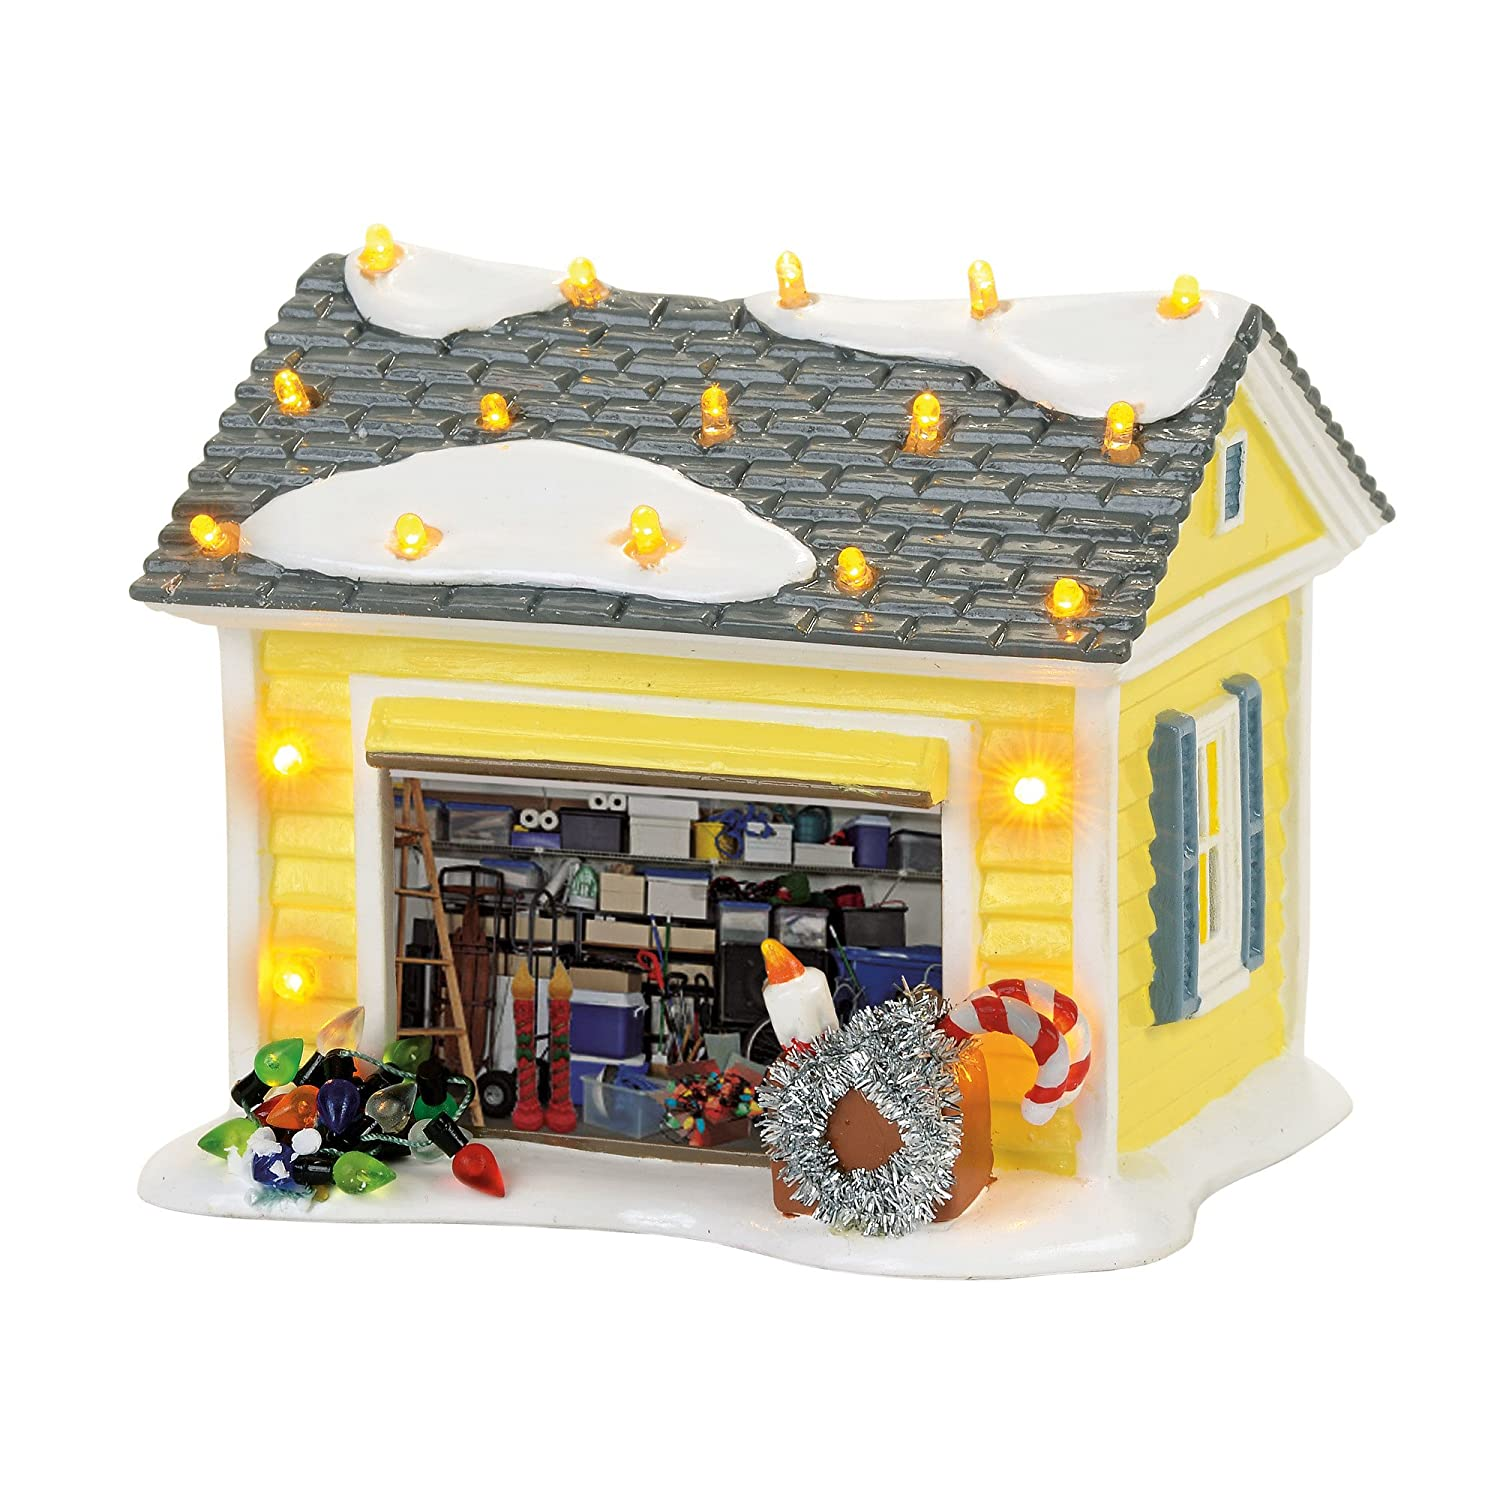 Department 56 Snow Village Christmas Vacation The Griswold Holiday Garage Lit Building, Multicolor 4056686